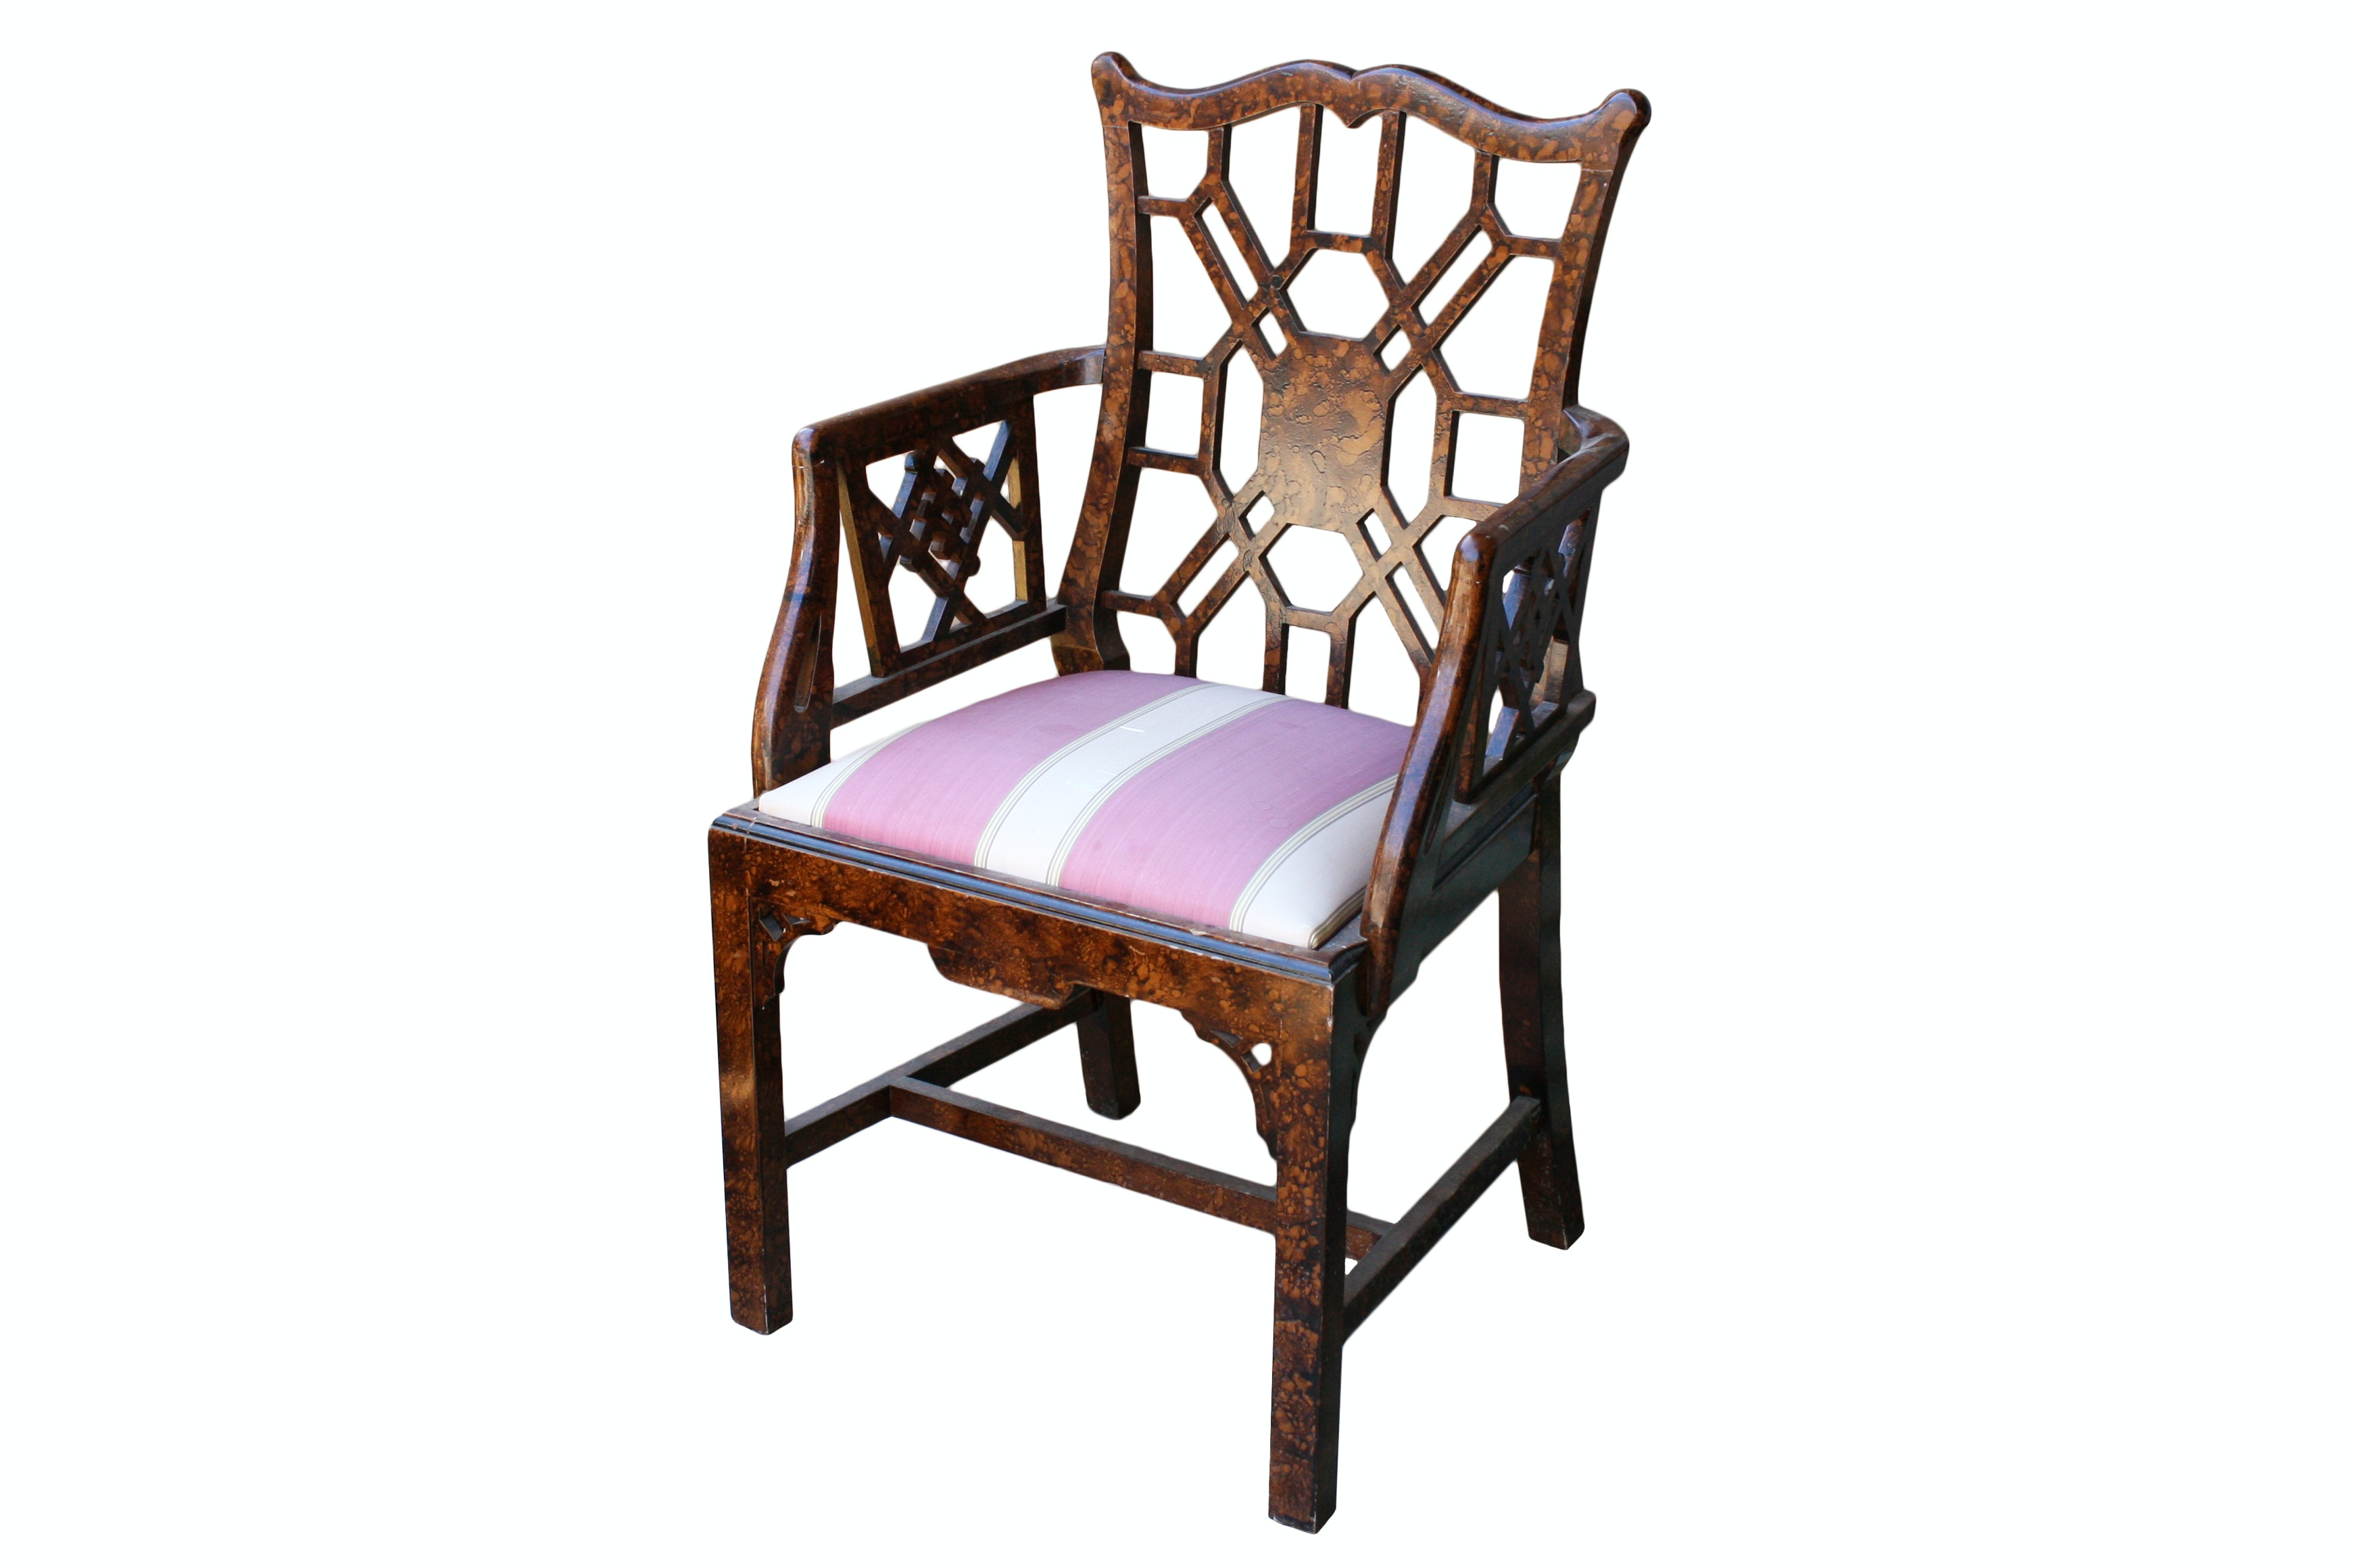 Vintage Asian-Style Armchair with Upholstered Seat